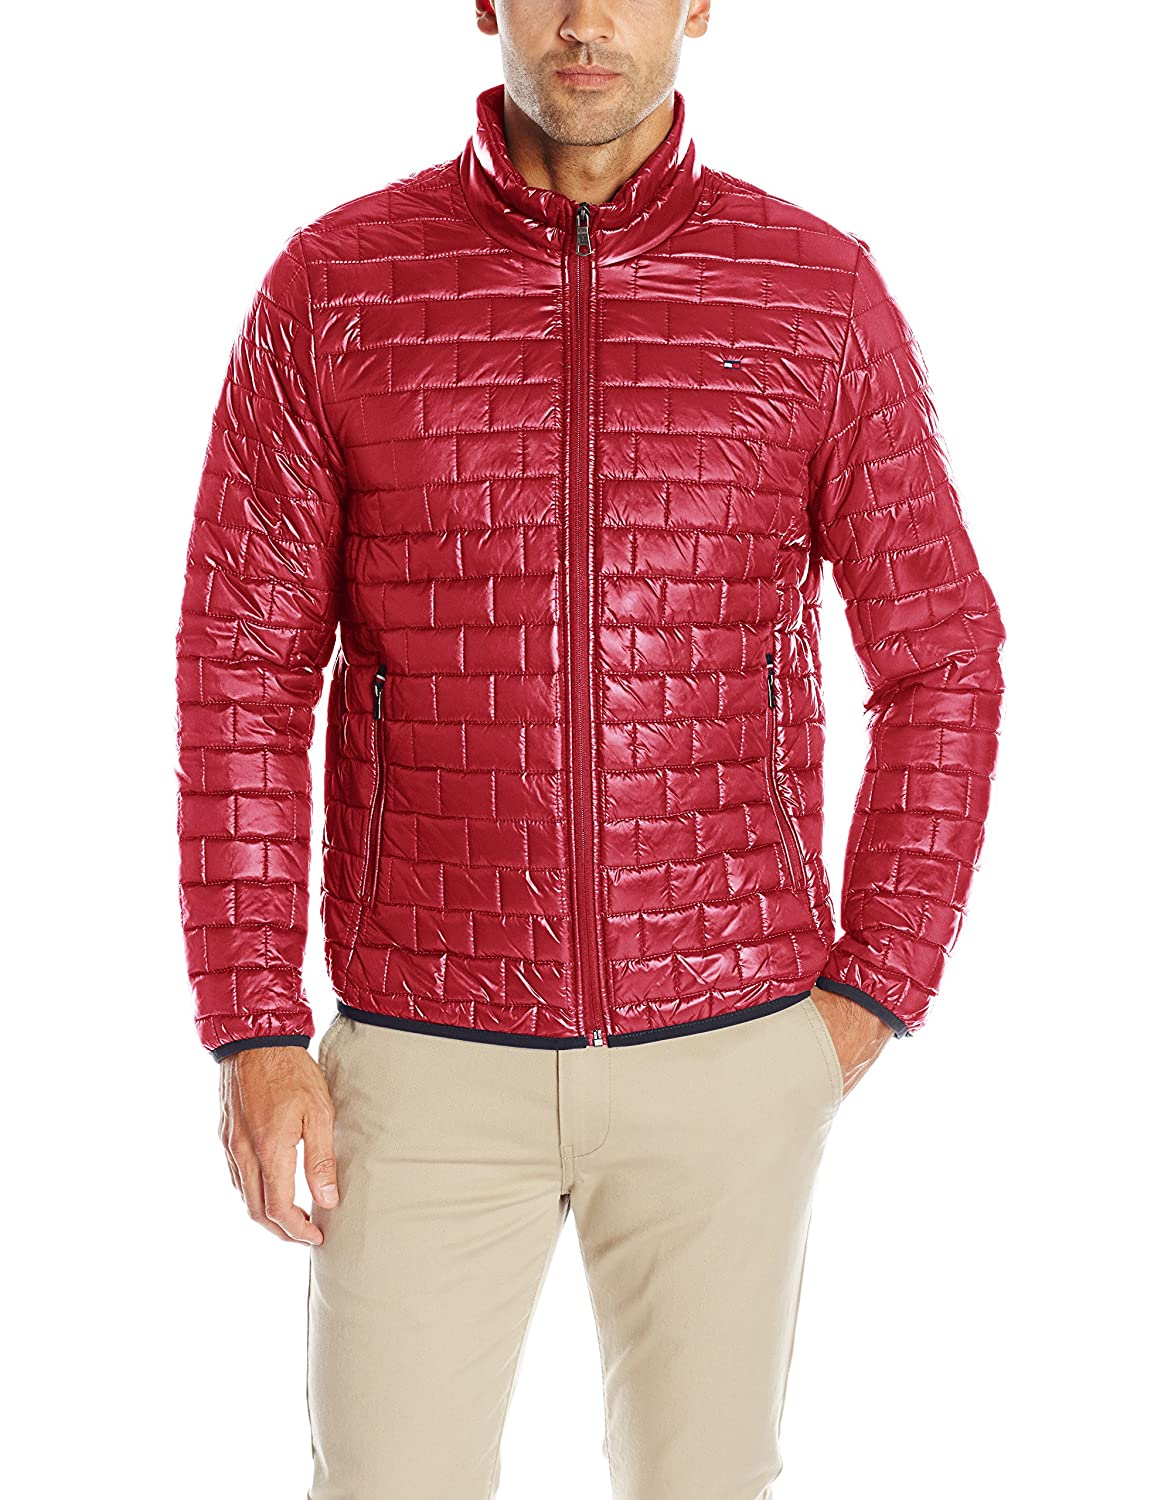 652e5fc69754 Tommy Hilfiger Men's Ultra Loft Sweaterweight Quilted Packable Jacket at  Amazon Men's Clothing store: